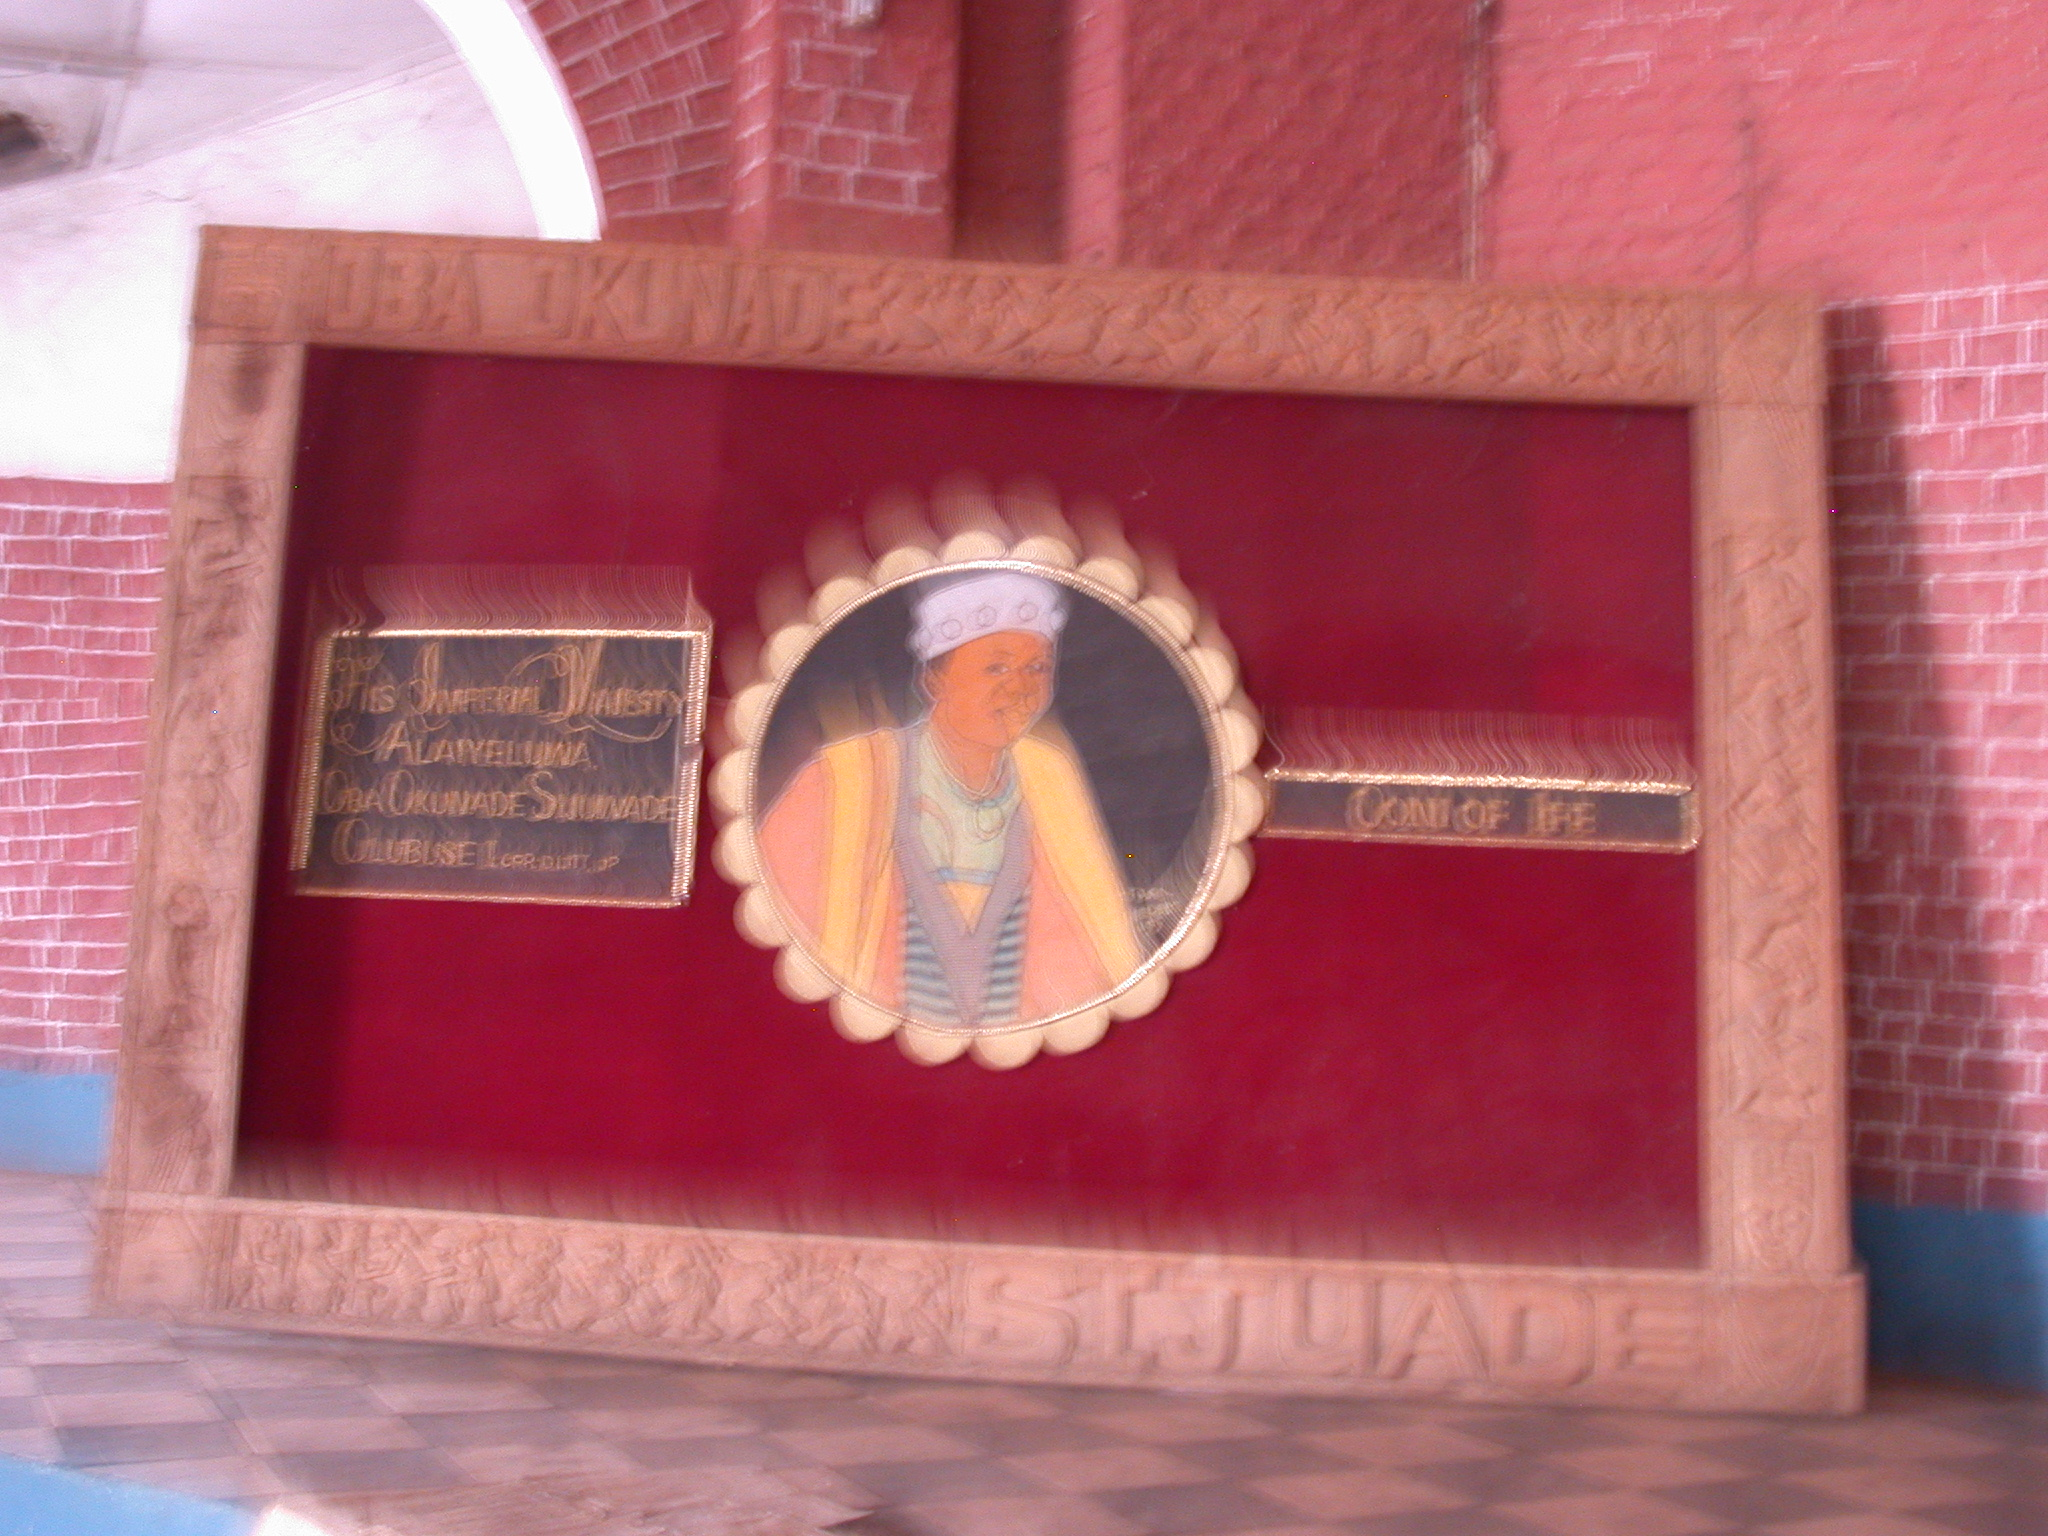 Blurry Photo of Shrine to Ooni of Ife, Ooni Palace, Ile-Ife, Nigeria